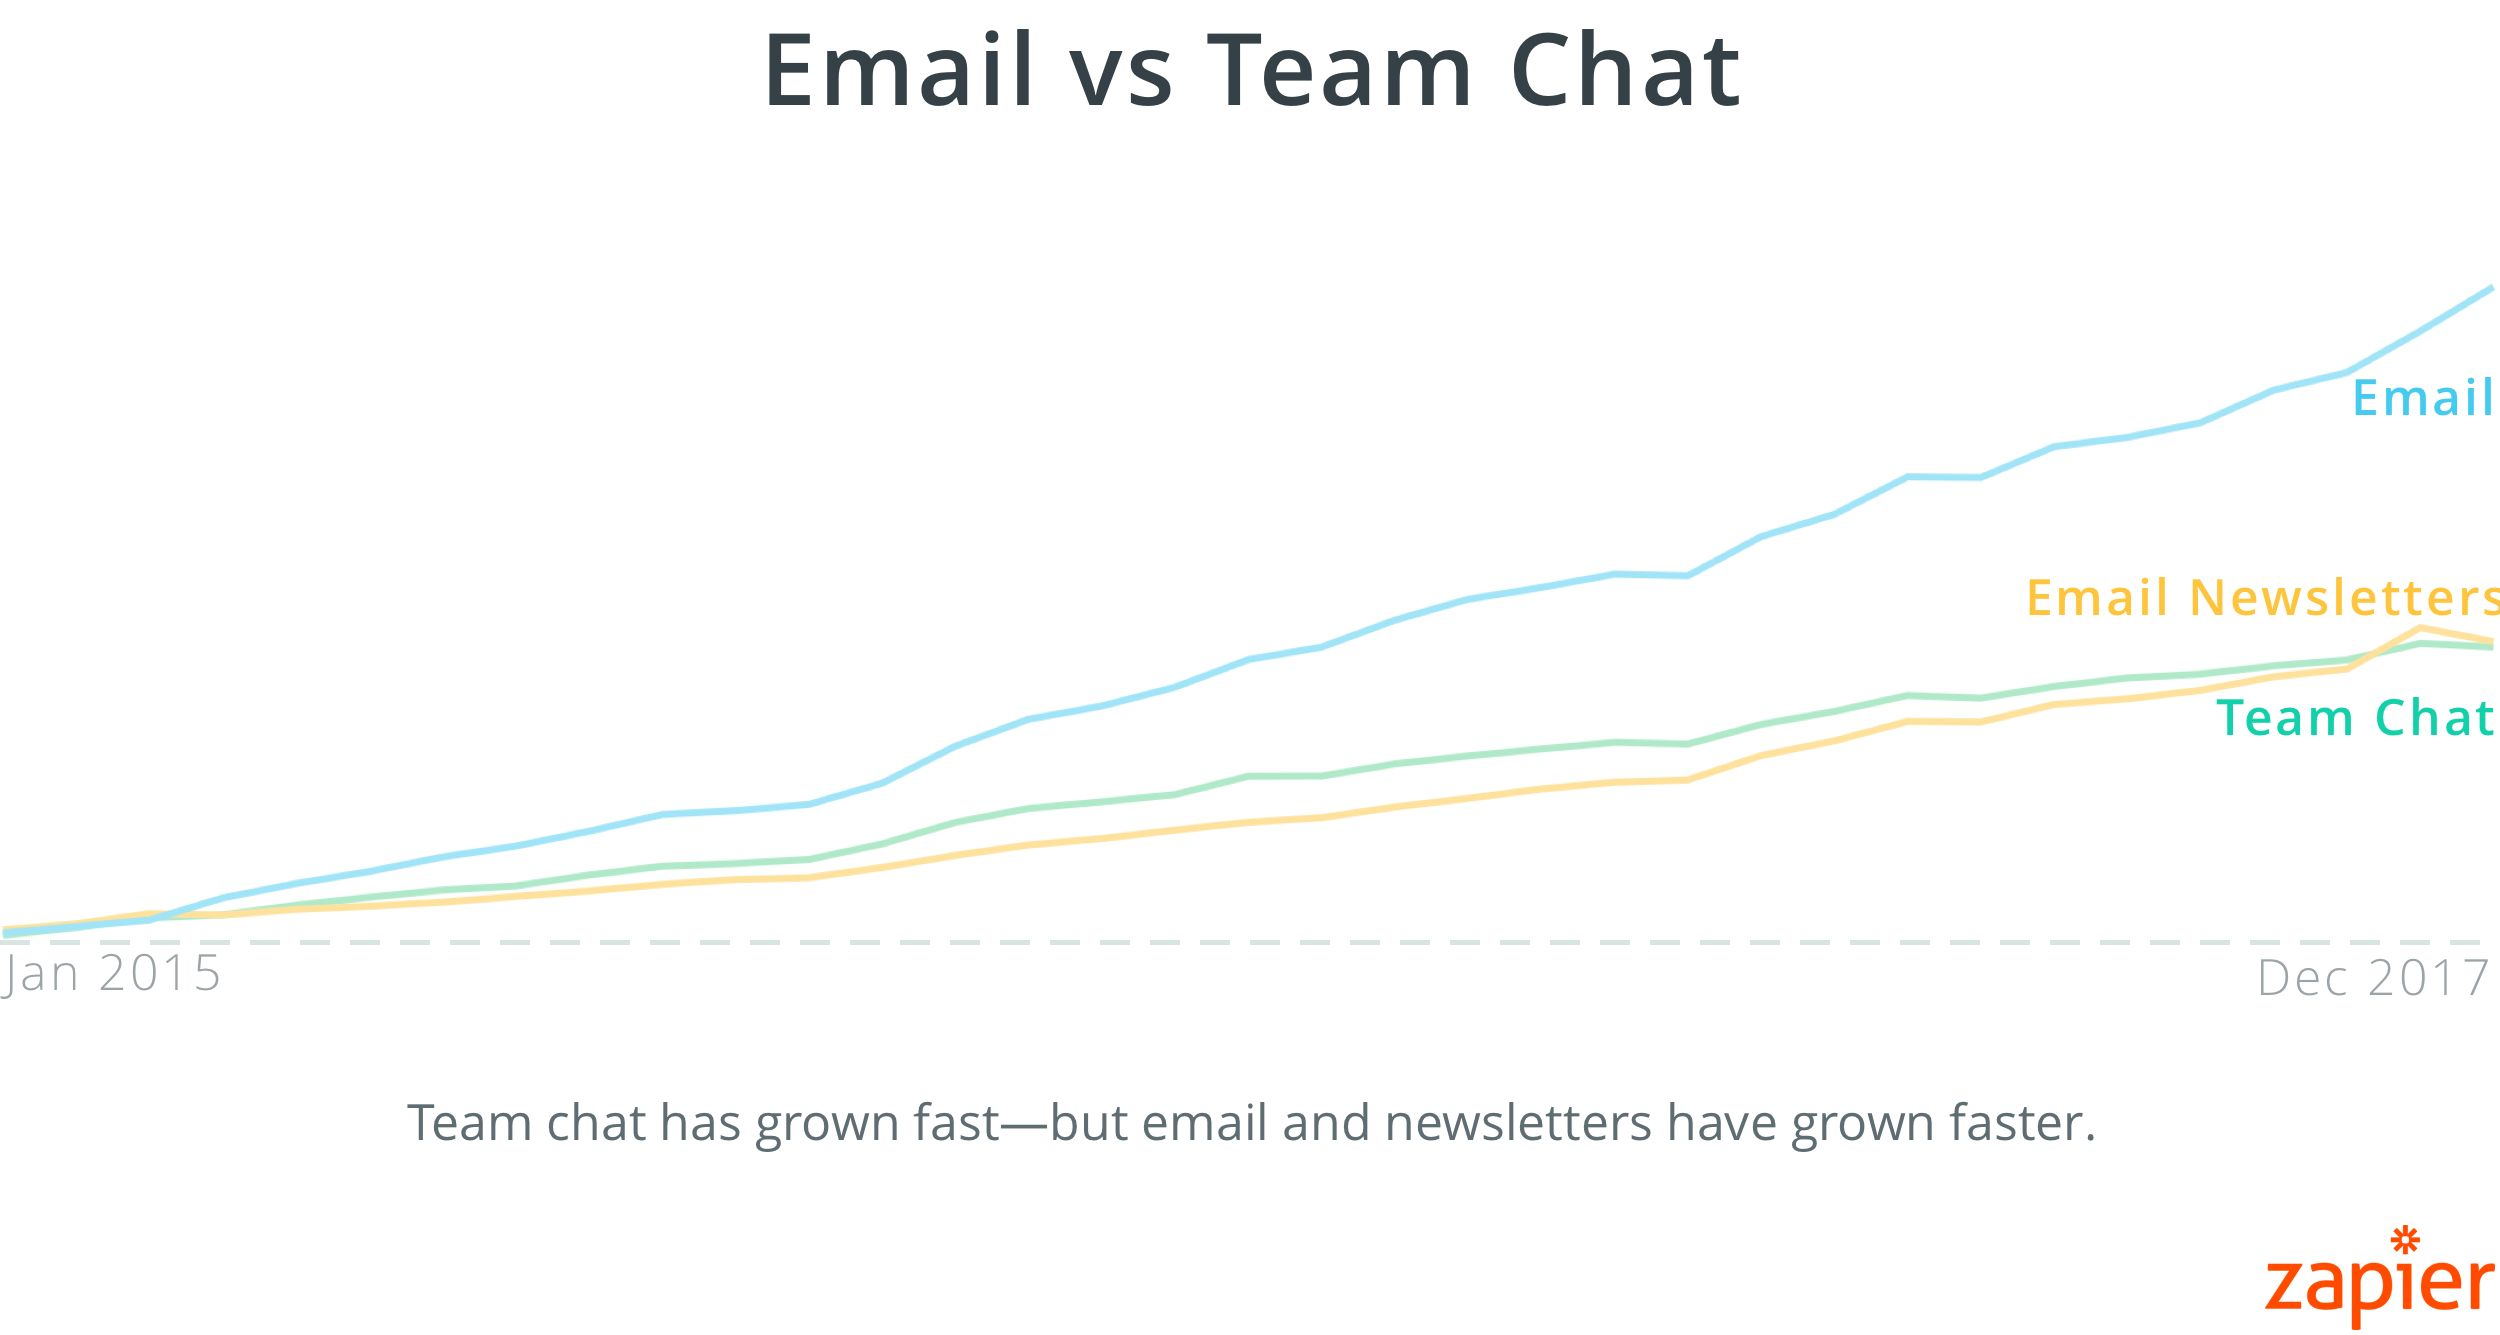 Team chat has grown fast—but email and even email newsletters have grown faster